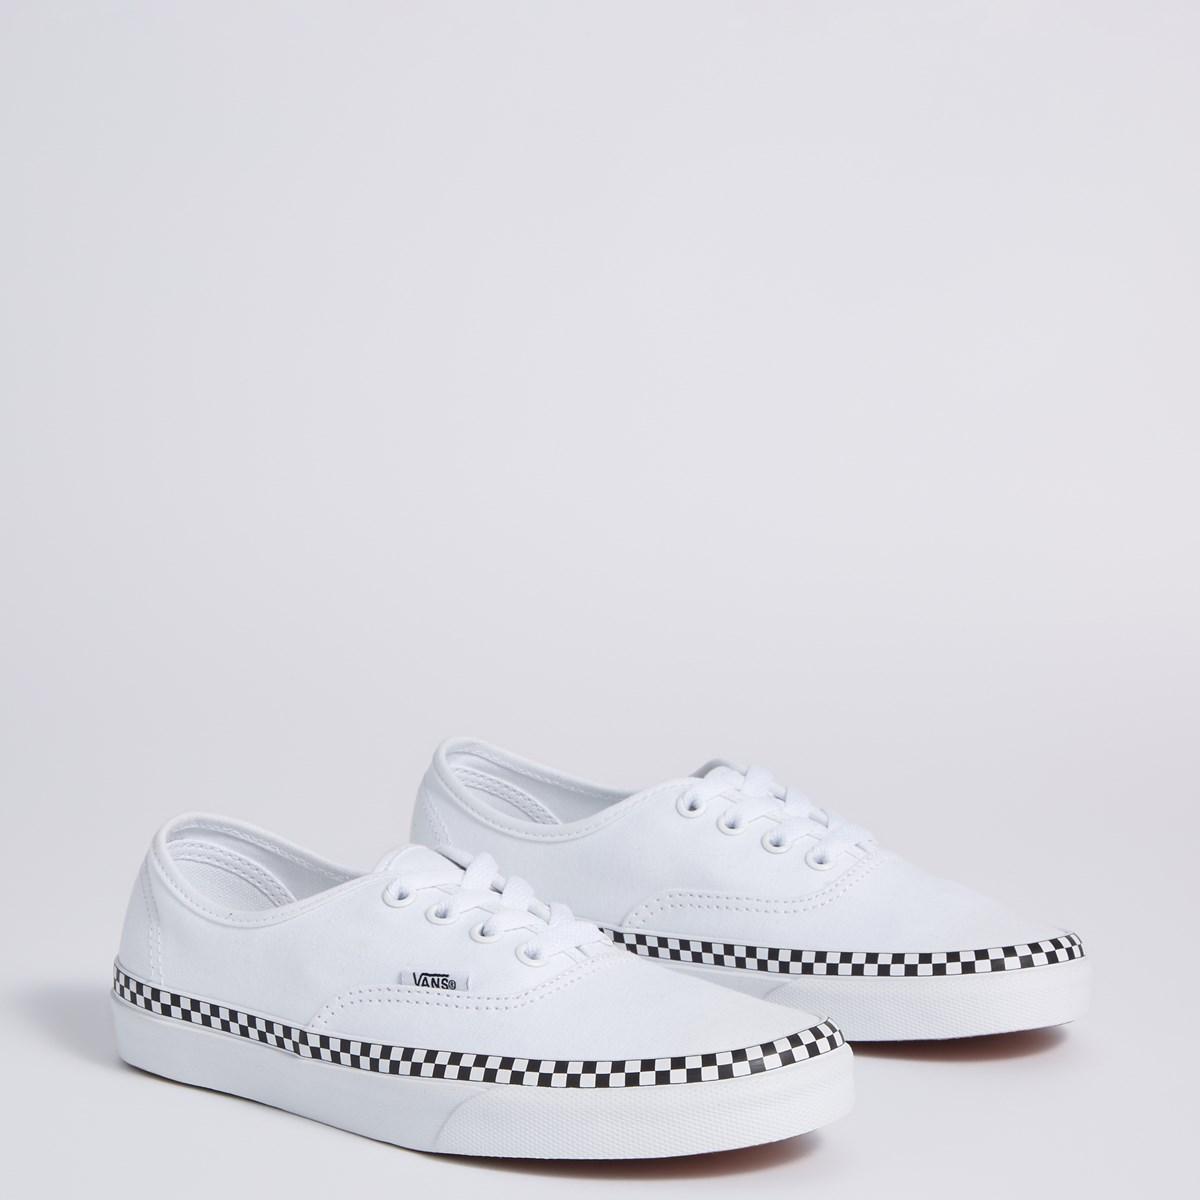 Women's Authentic Sneakers in White